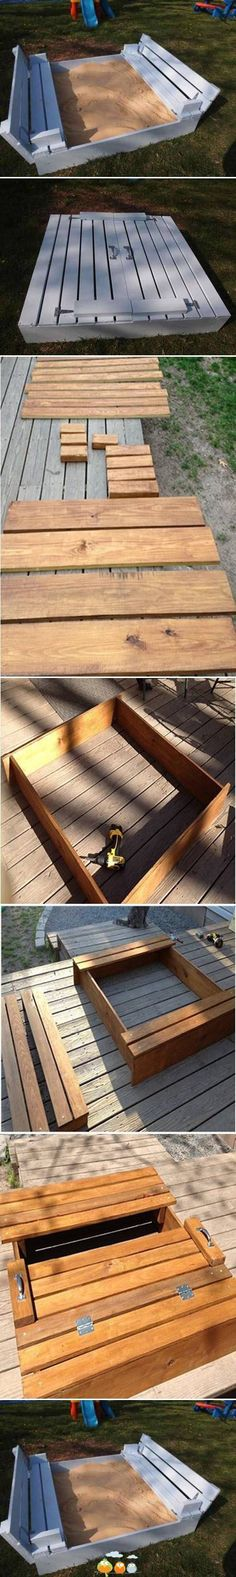 A pallet sandbox for an easy DIY.